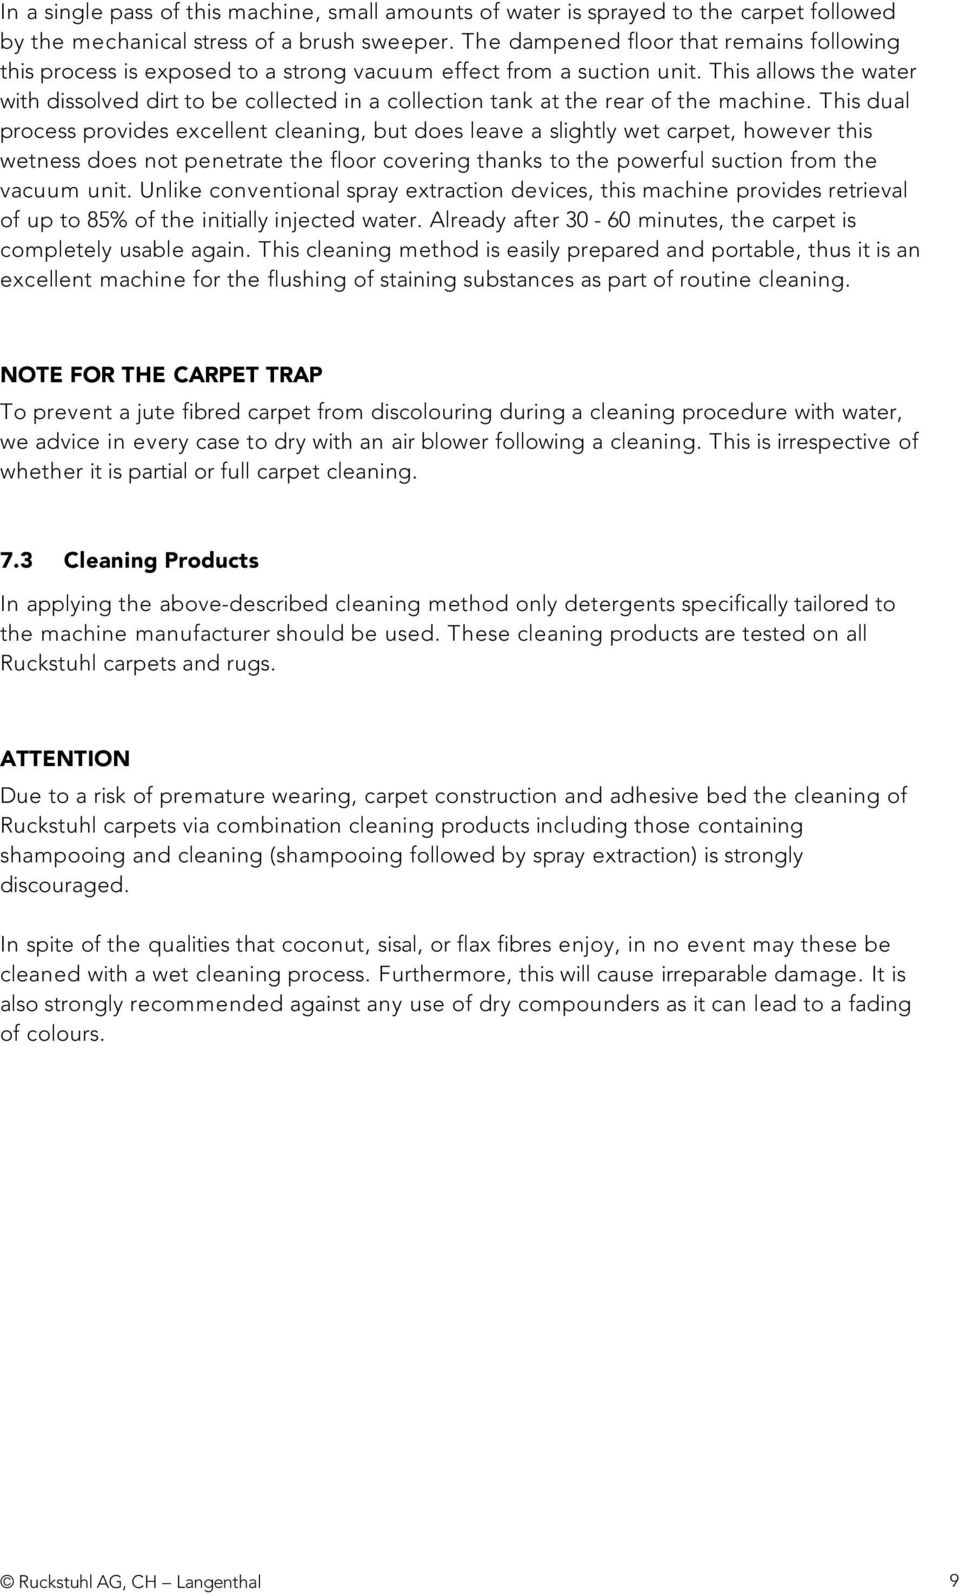 CLEANING. Guidelines for proper care